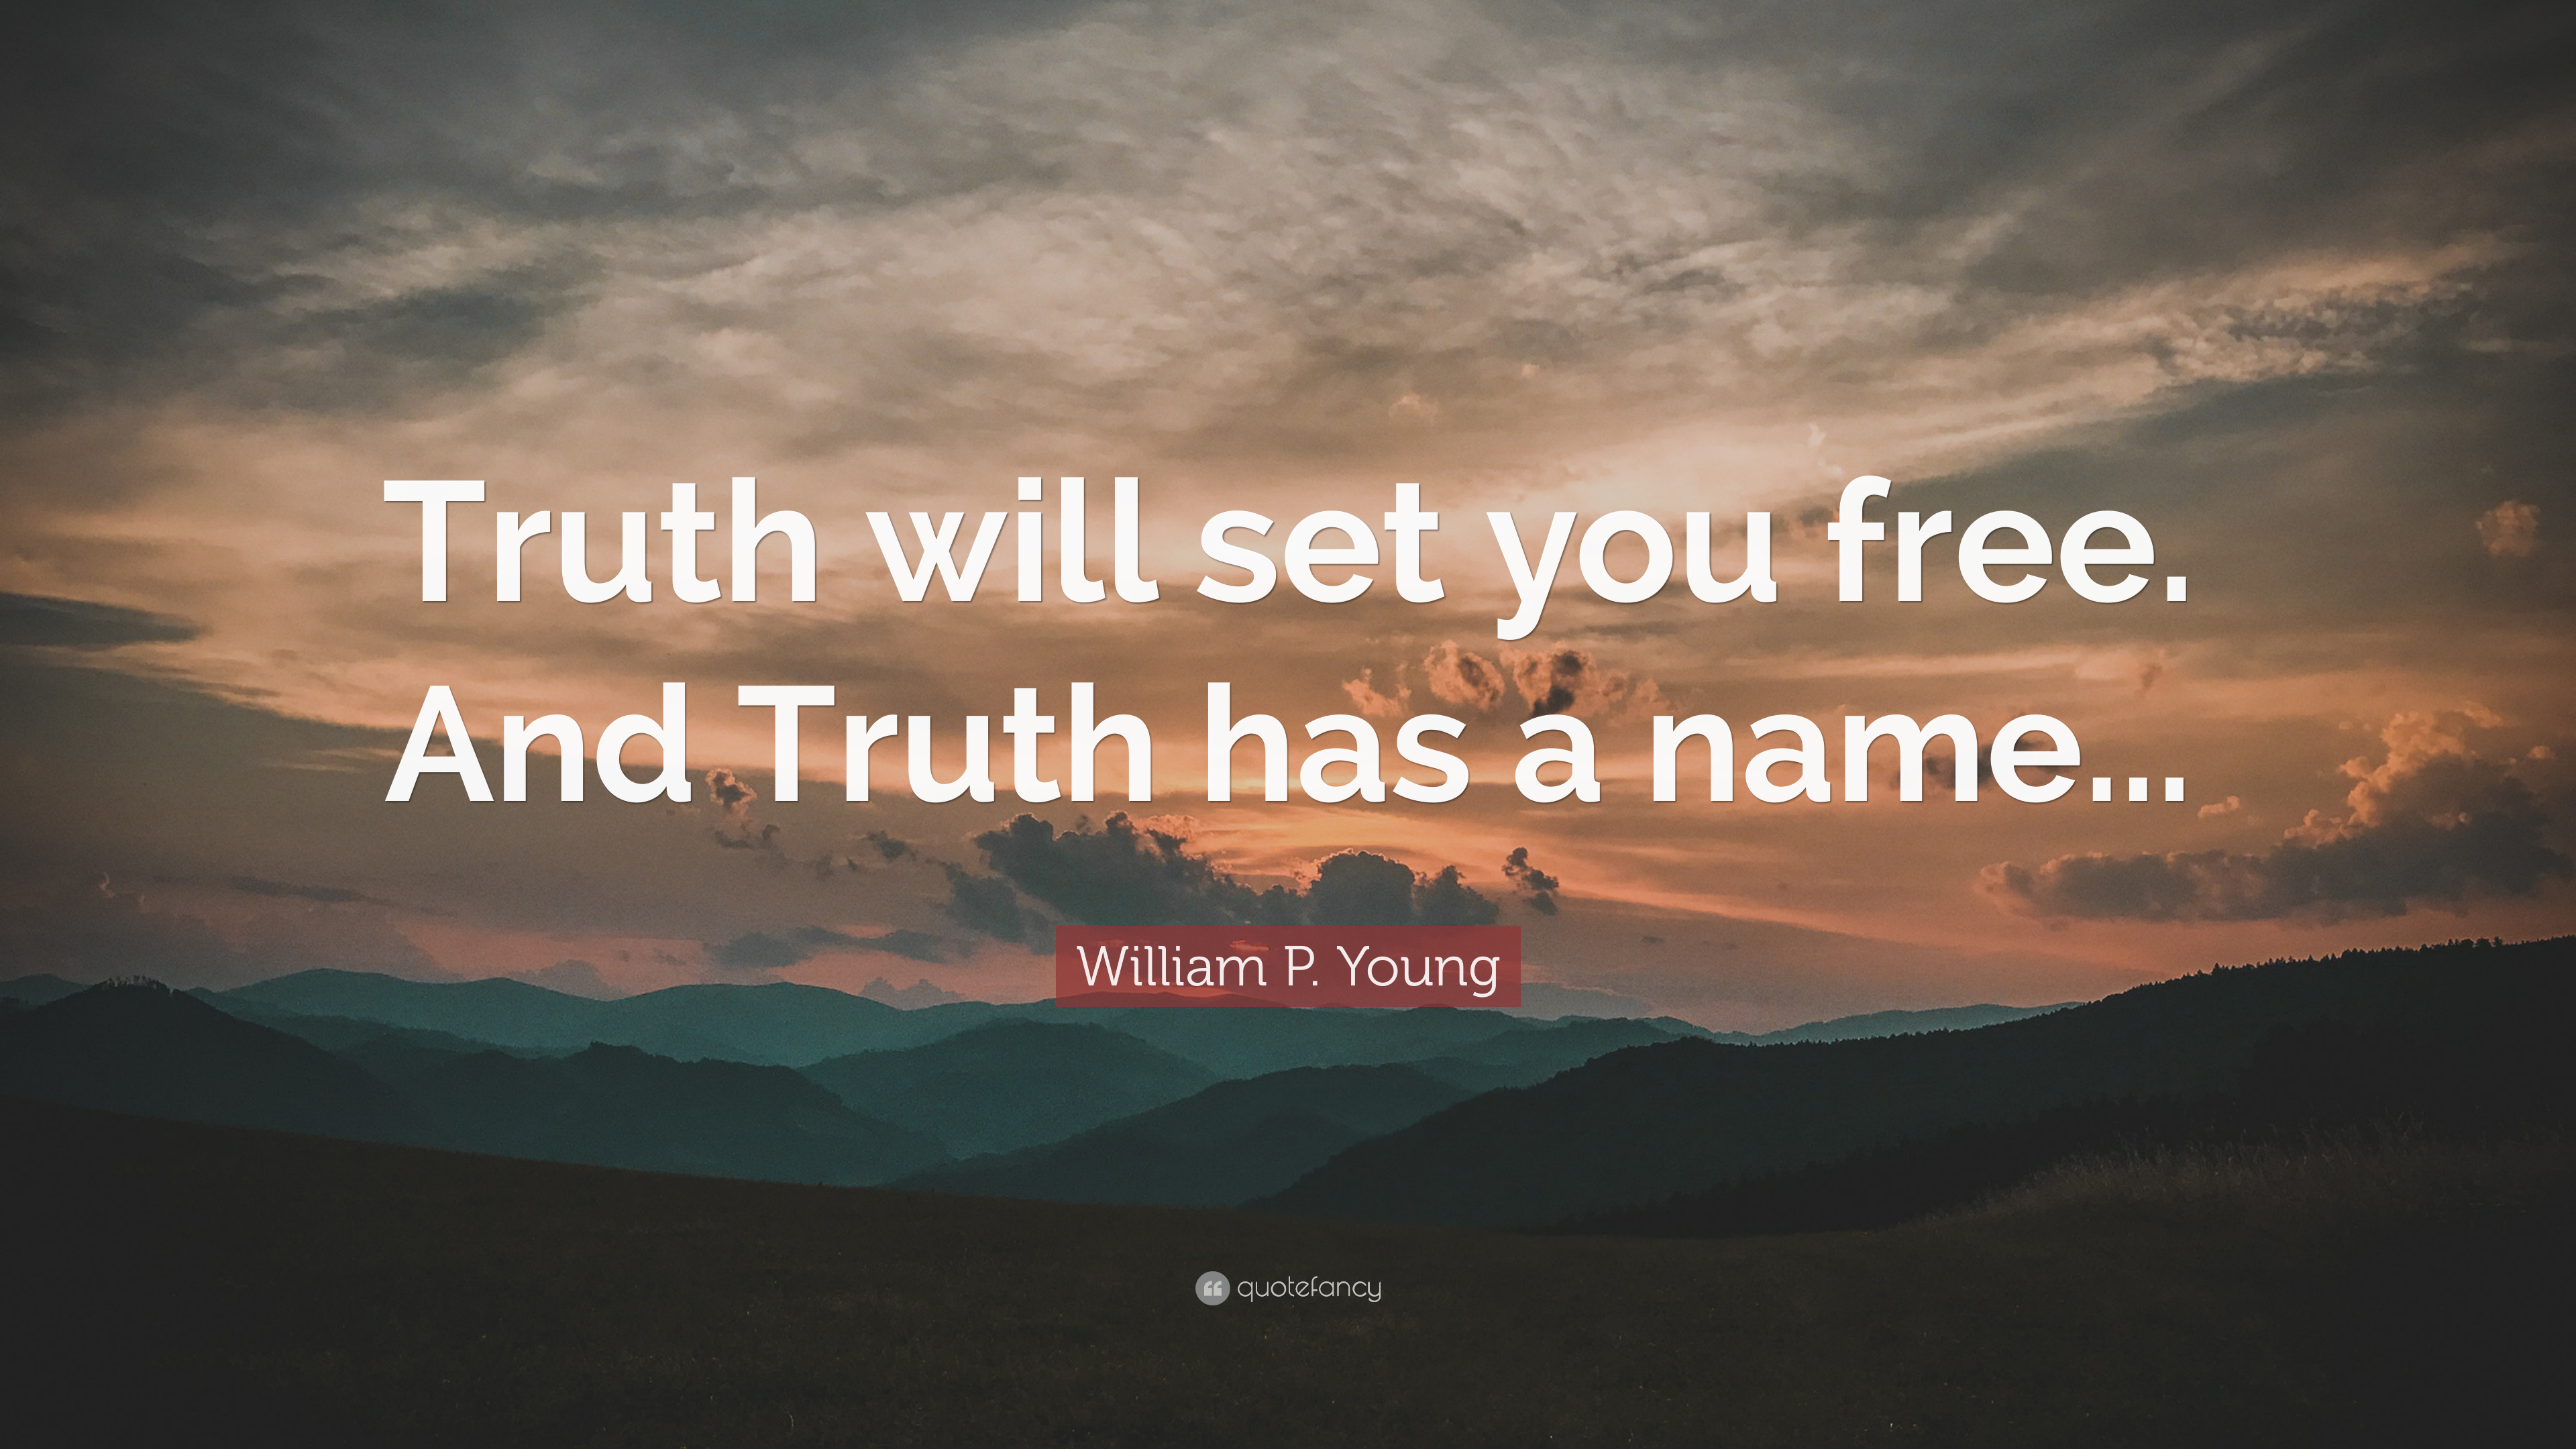 David Foster Wallace Quotes Wallpaper The Truth Will Set You Free Wallpaper Www Pixshark Com